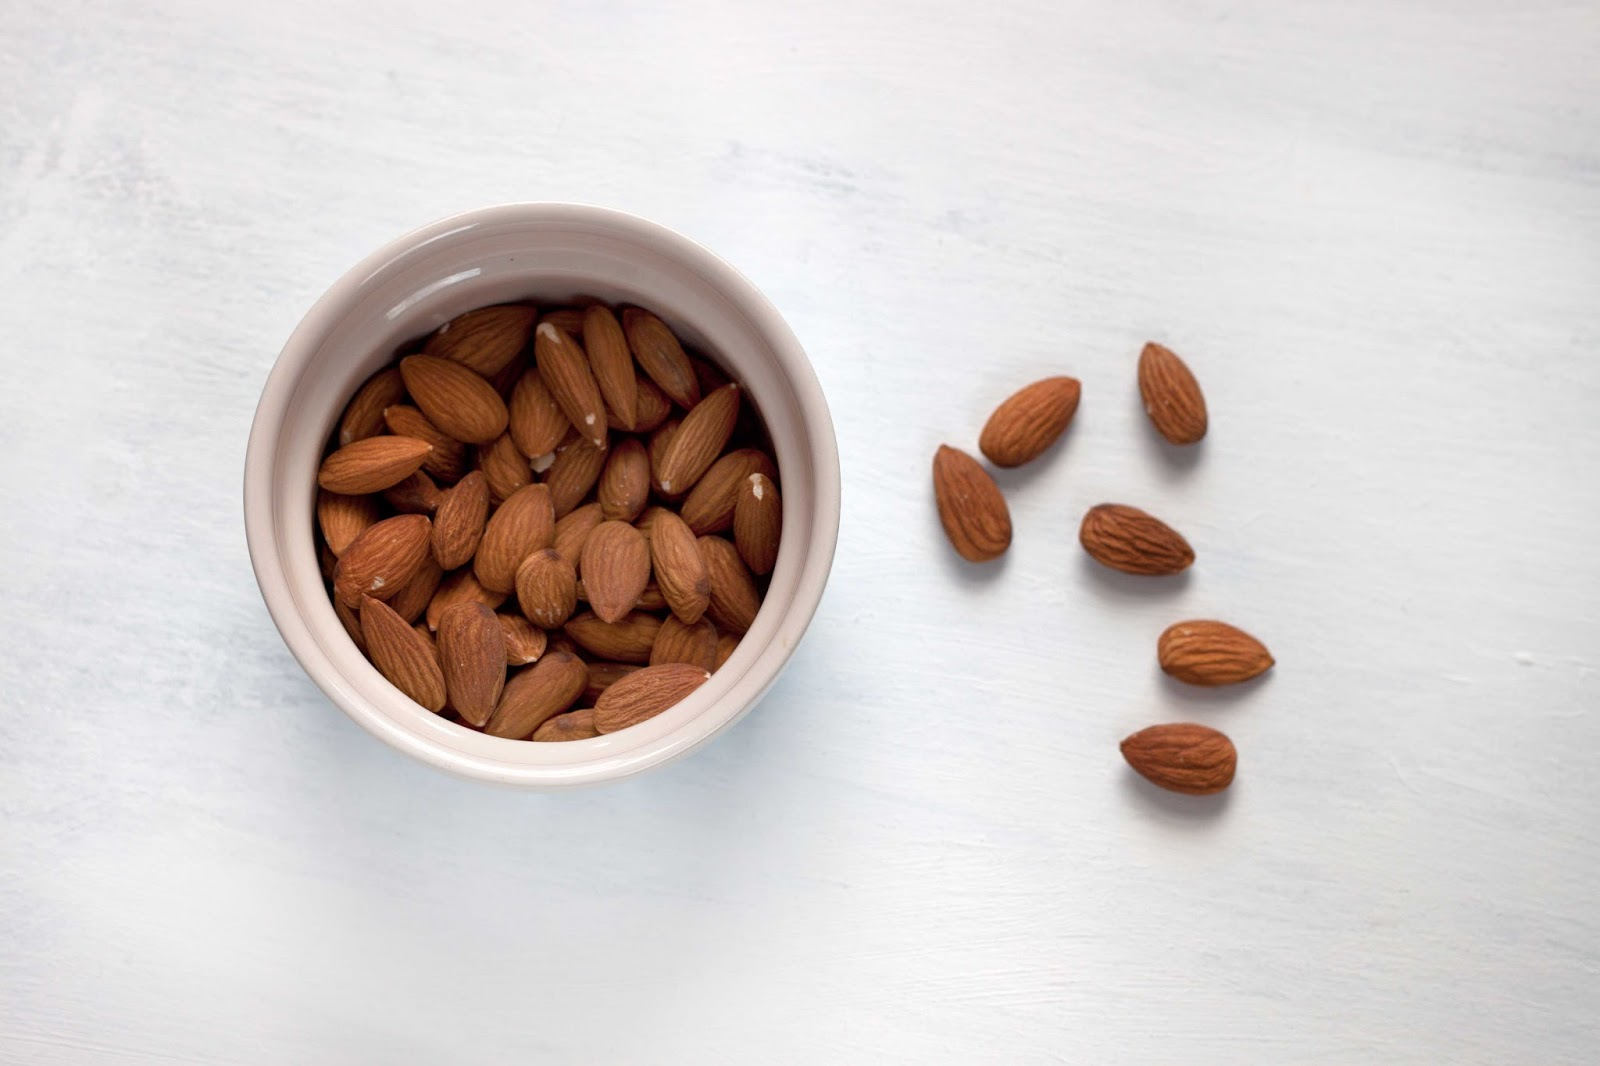 10 HEALTH BENEFITS OF: ALMONDS